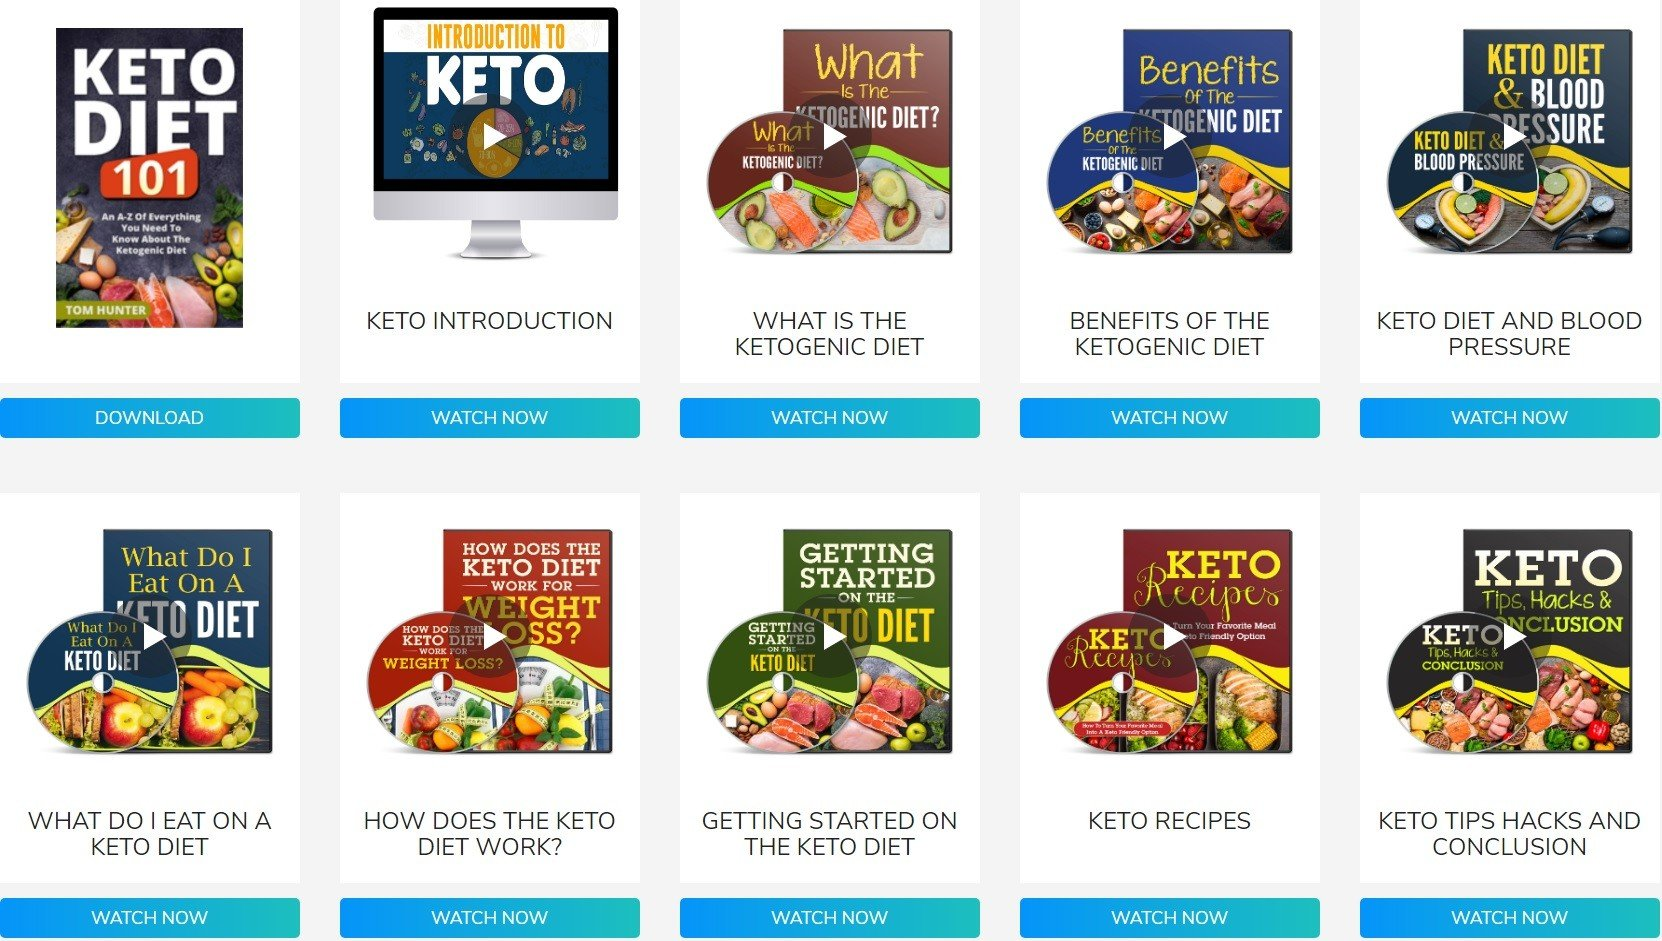 Monthly Payment Custom Keto Diet